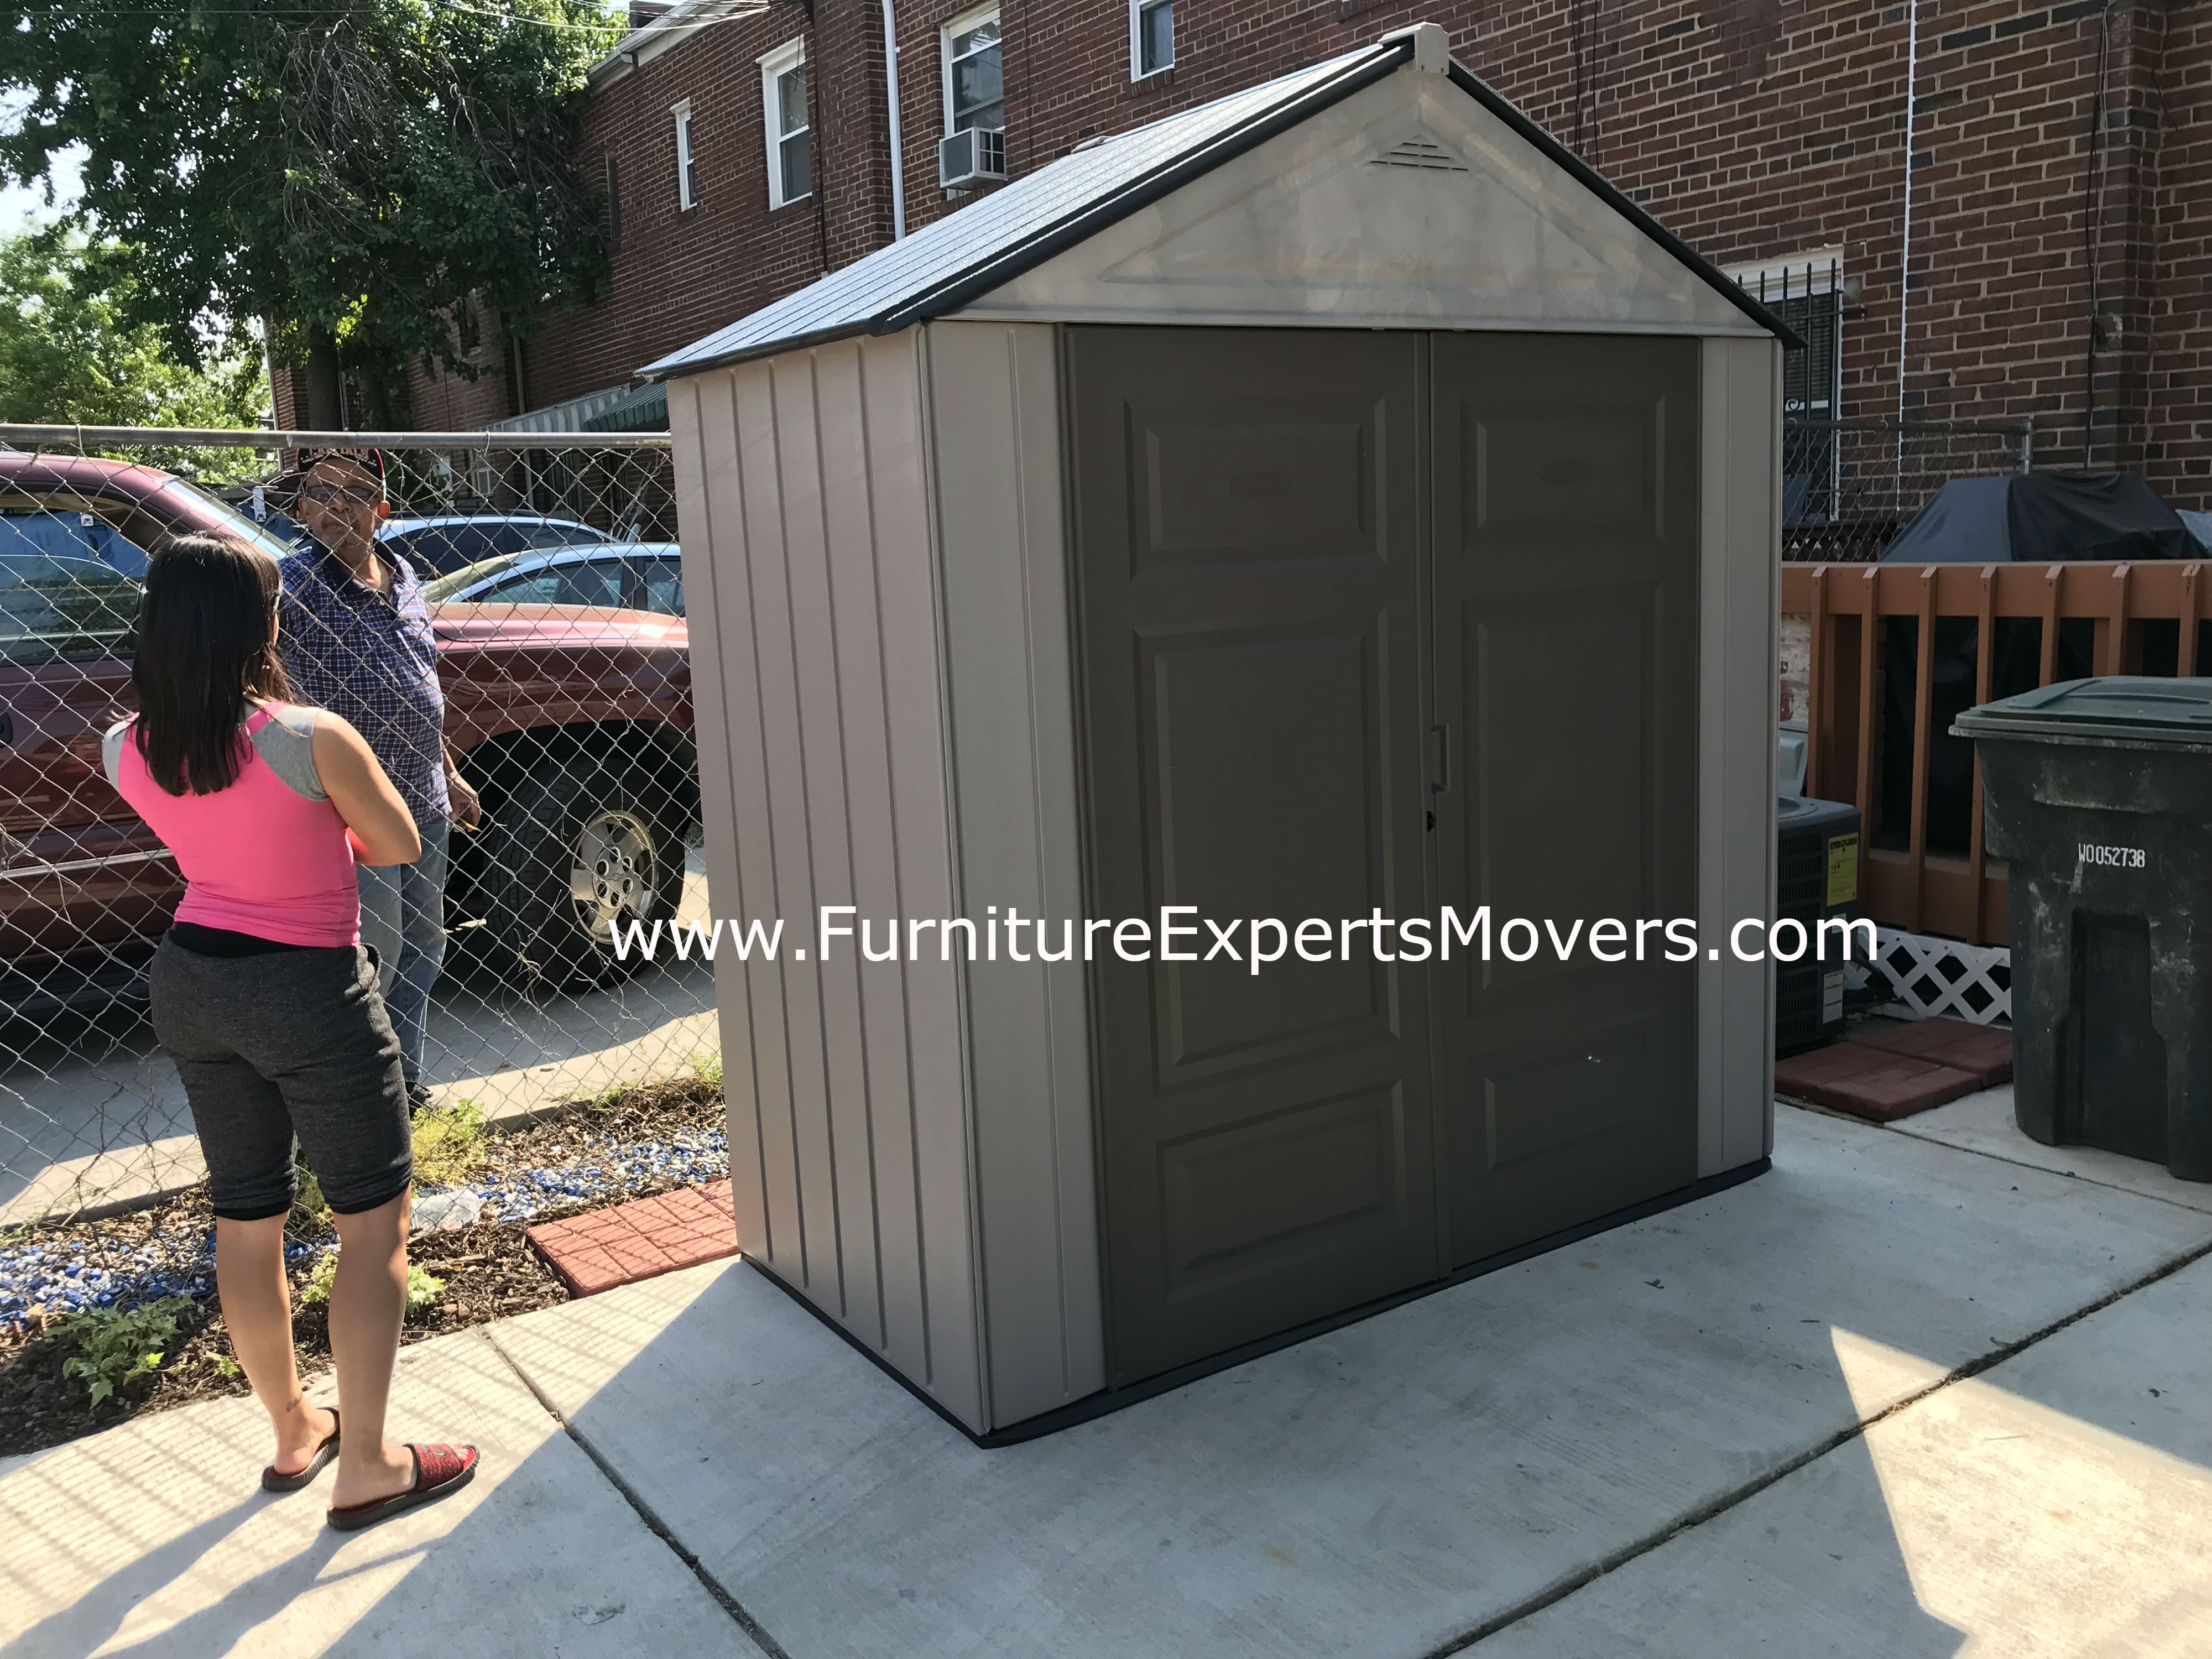 Home Depot Storage Shed Moving And Installation Completed For A Customer In Frederick Maryland Storage Shed Shed Outdoor Storage Sheds